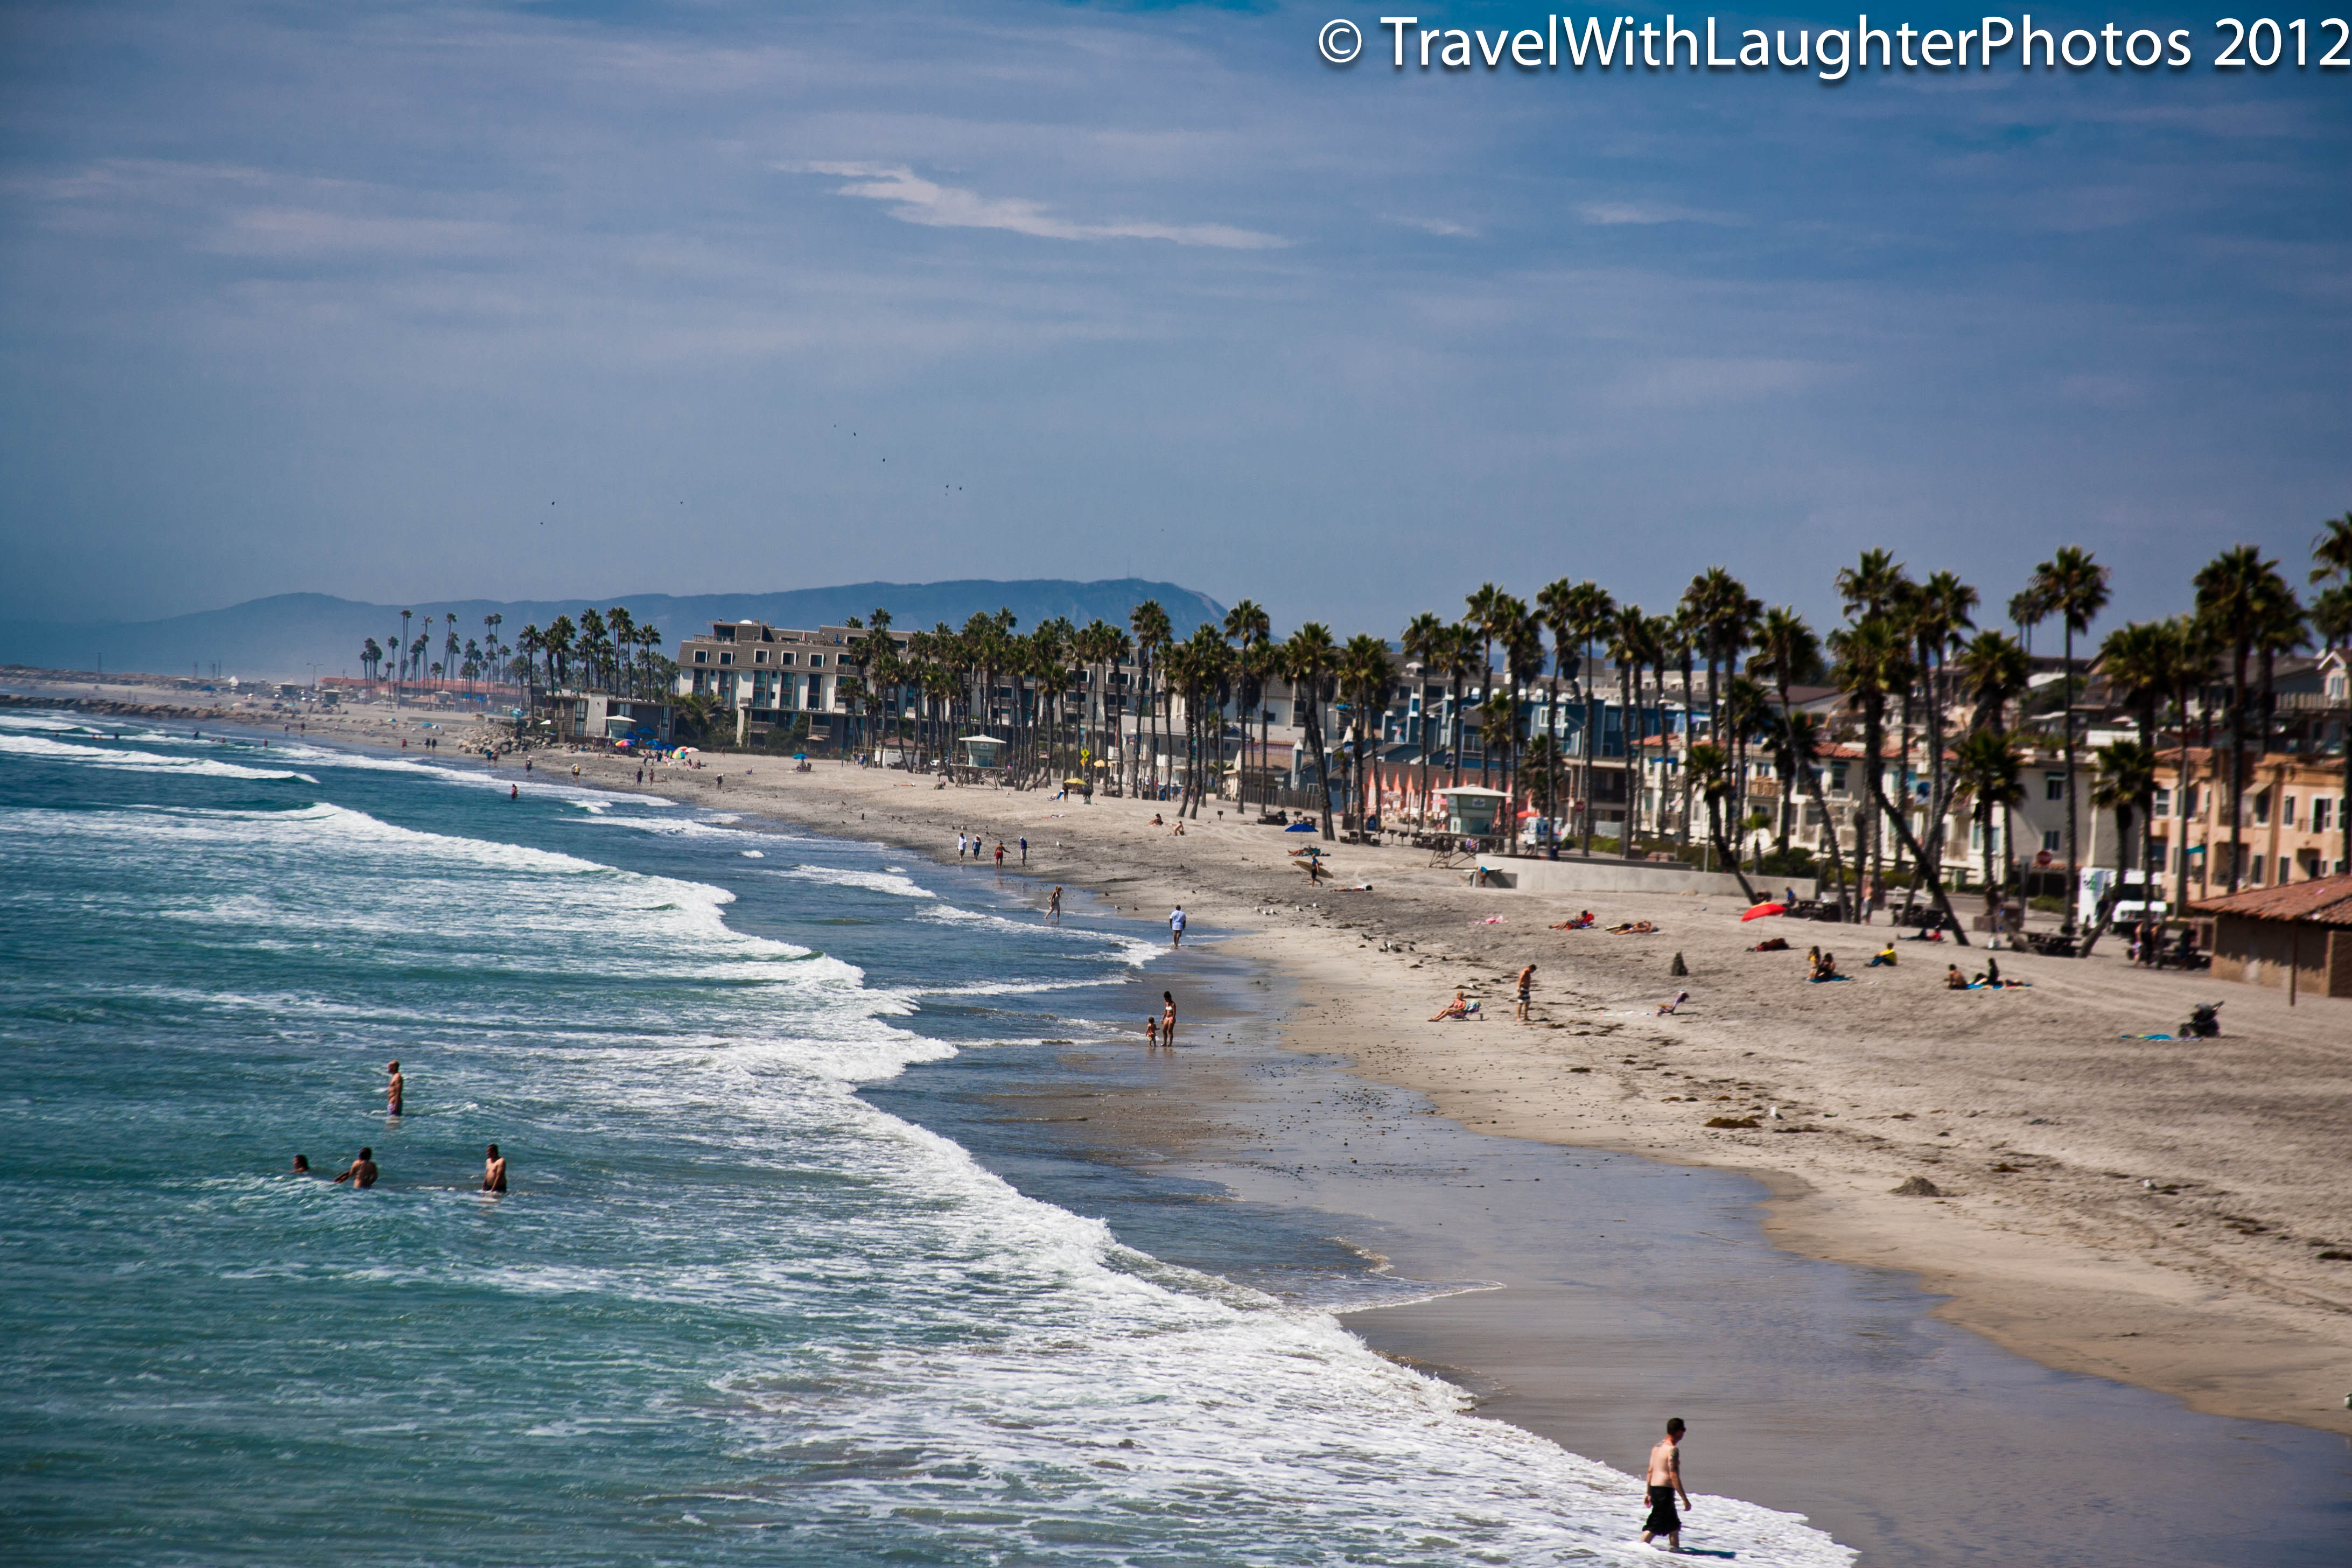 Oceanside, CA Pier – Travel With Laughter